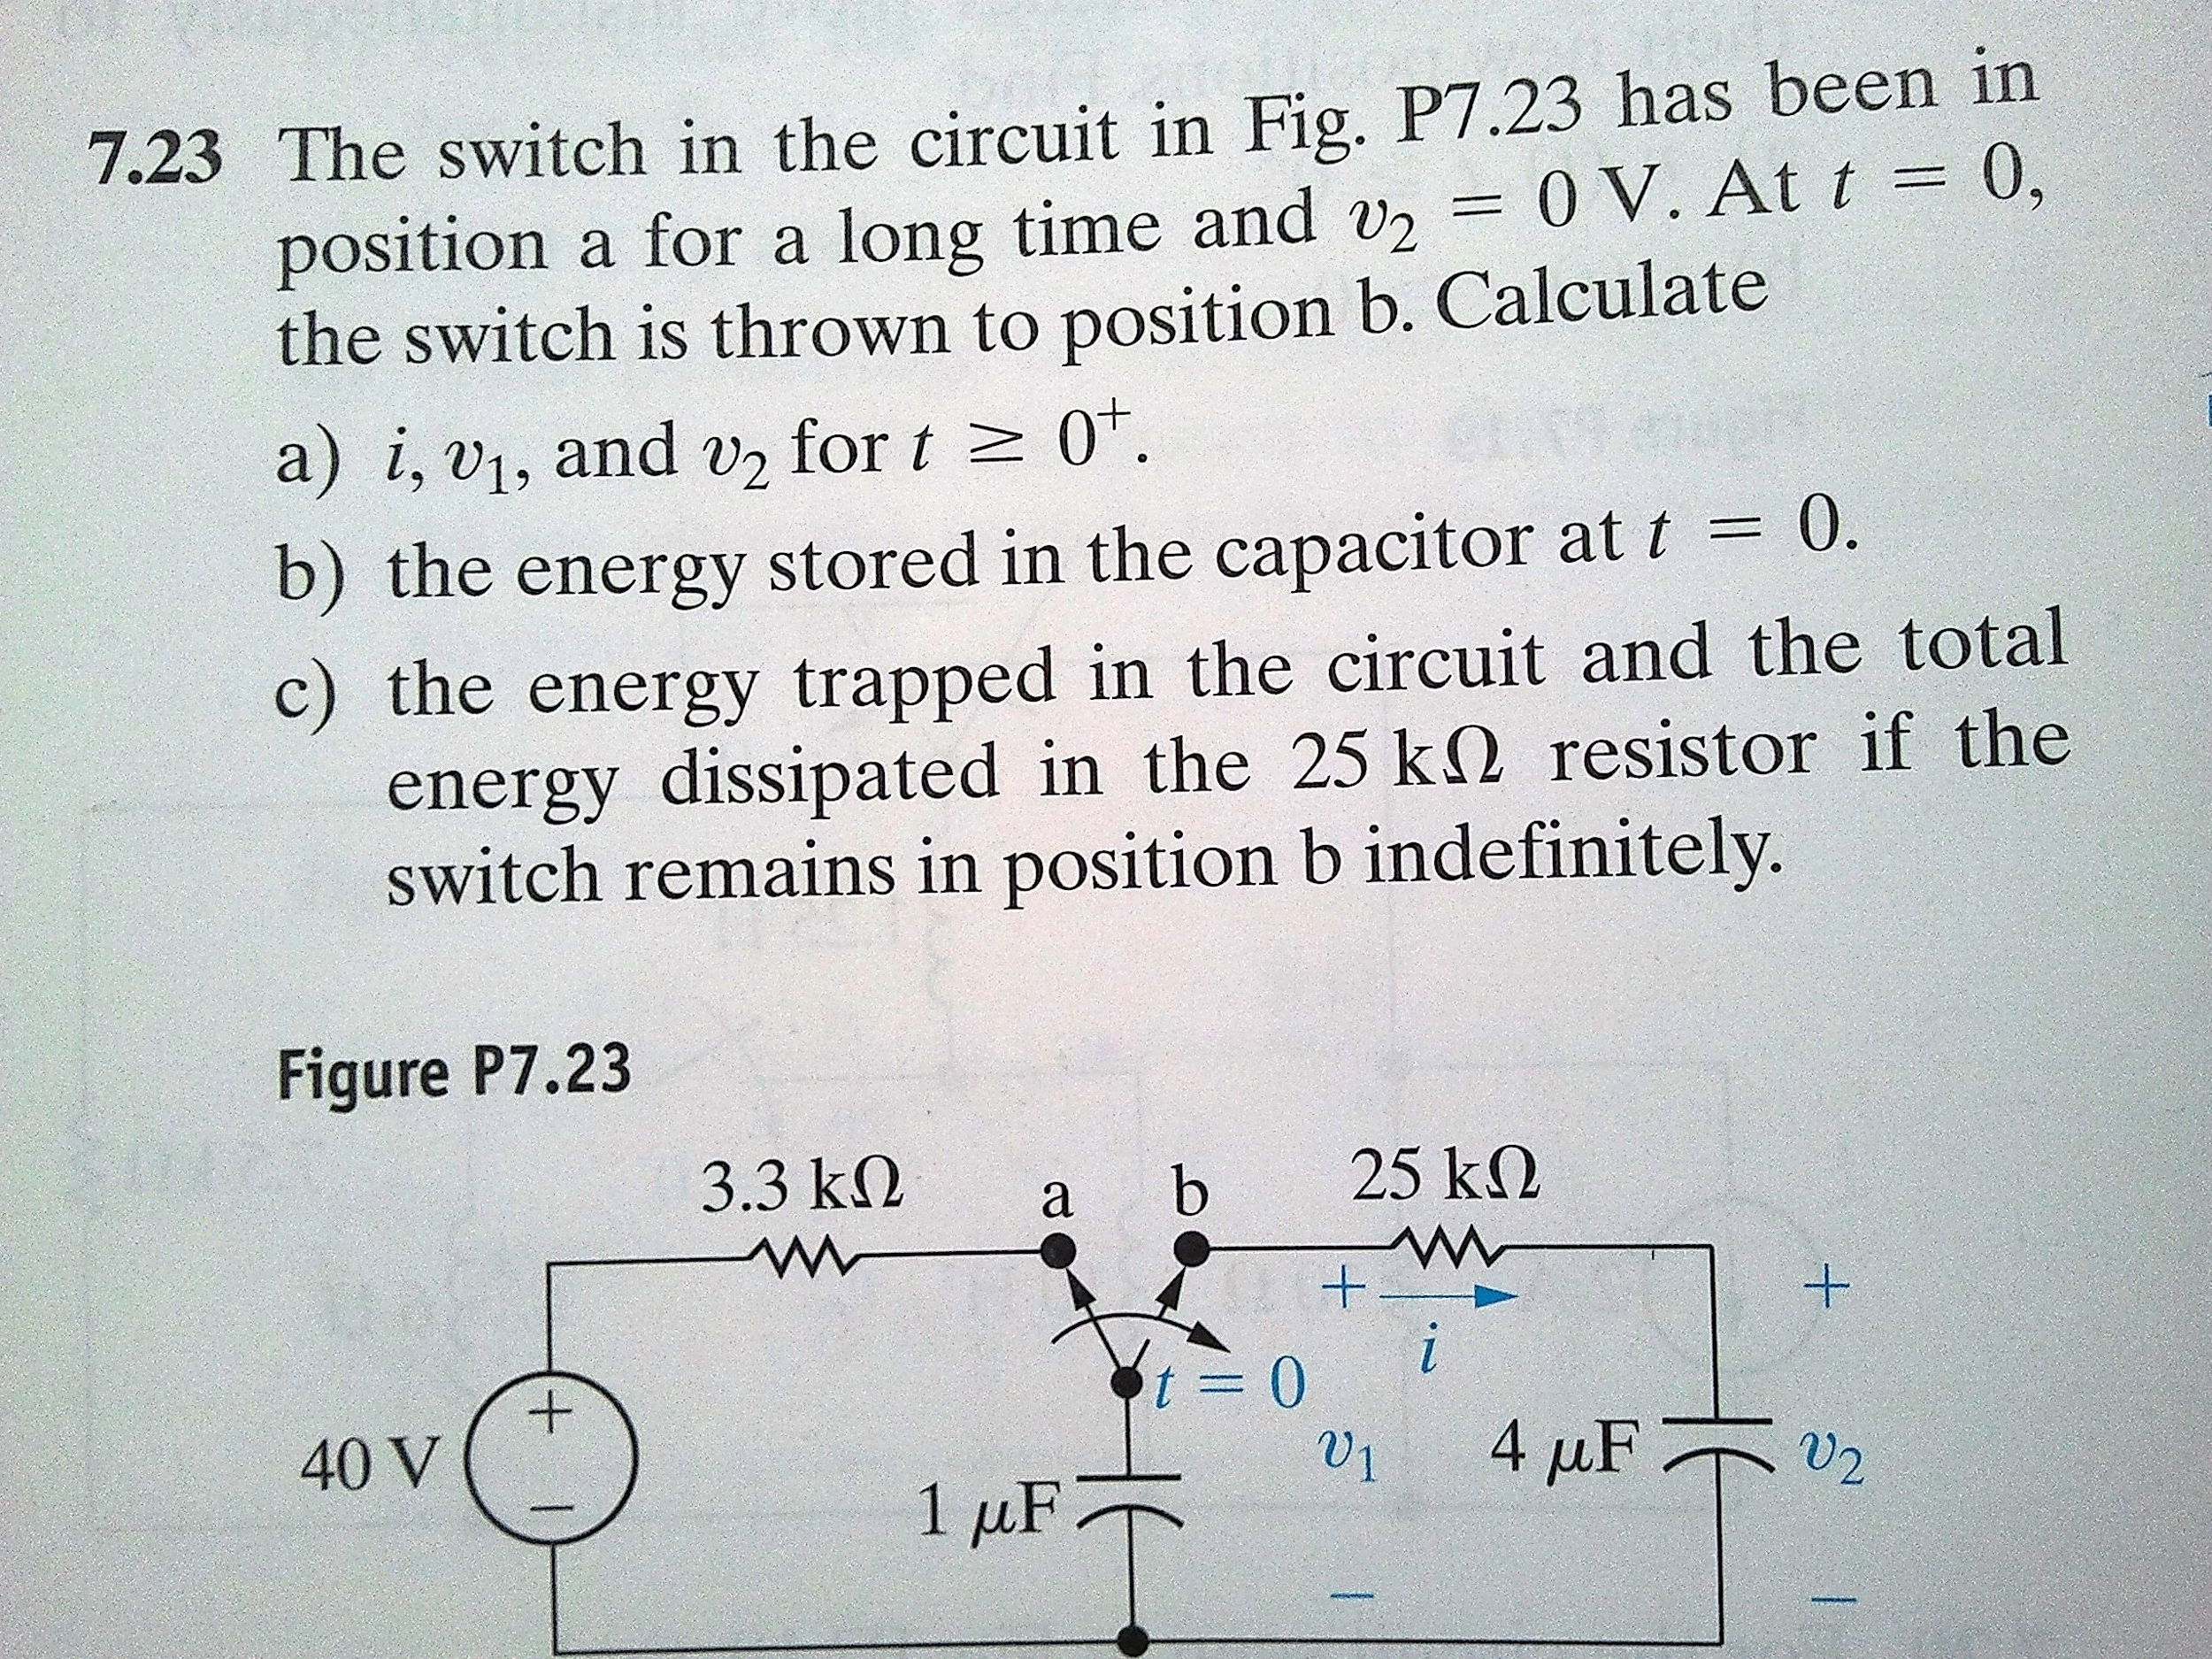 The switch in the circuit in Fig. P7.23 has been i